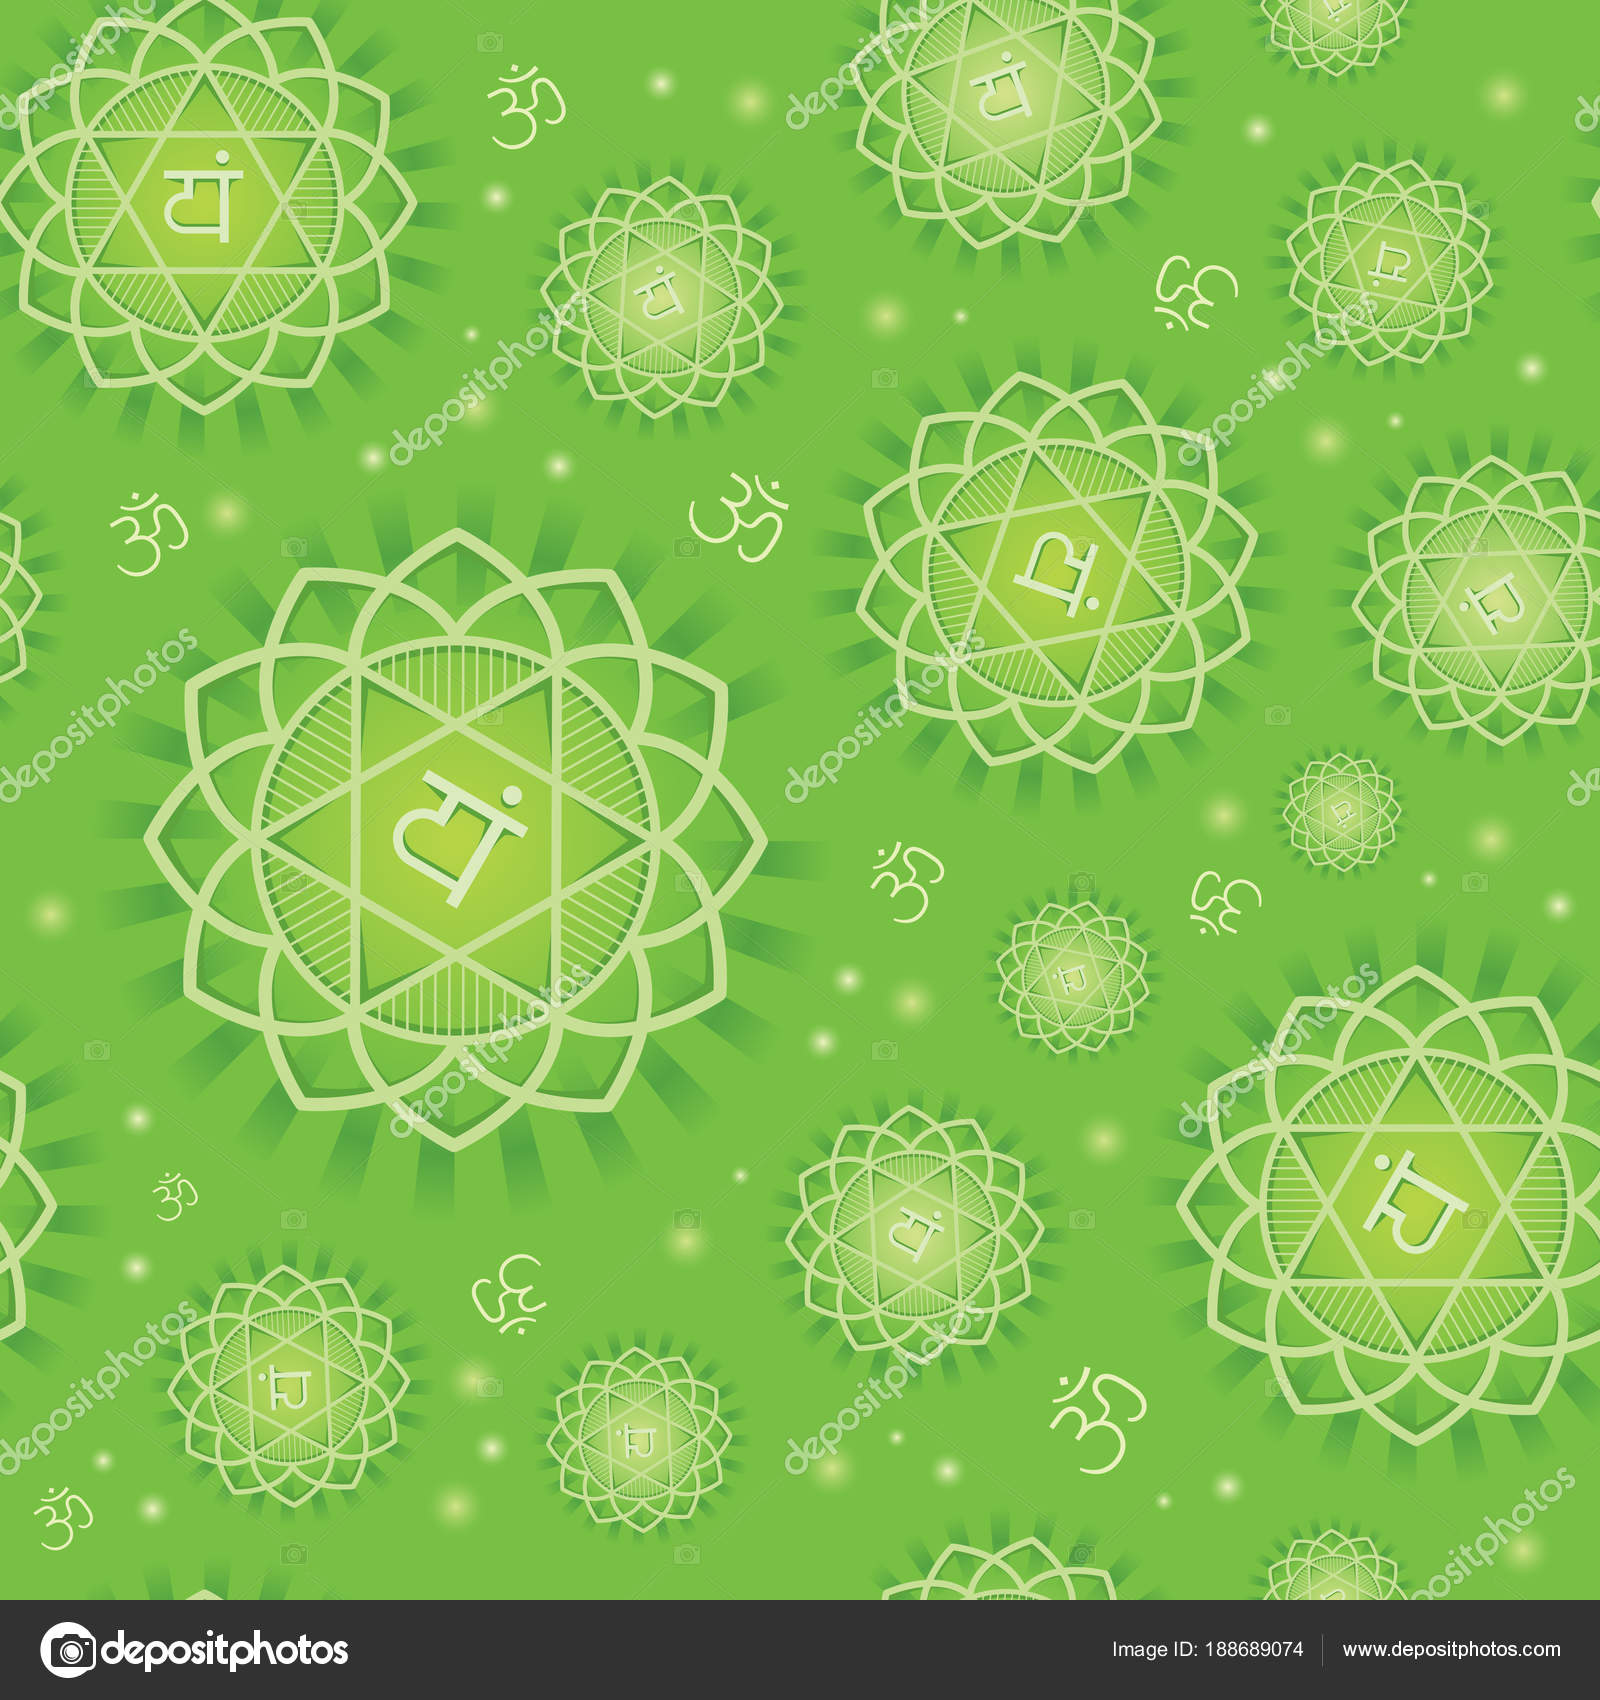 Seamless repeat pattern with primary chakra anahata symbol of seamless repeat pattern with primary chakra anahata symbol of energy center of human body used in hinduism buddhism and ayurveda vector buycottarizona Gallery